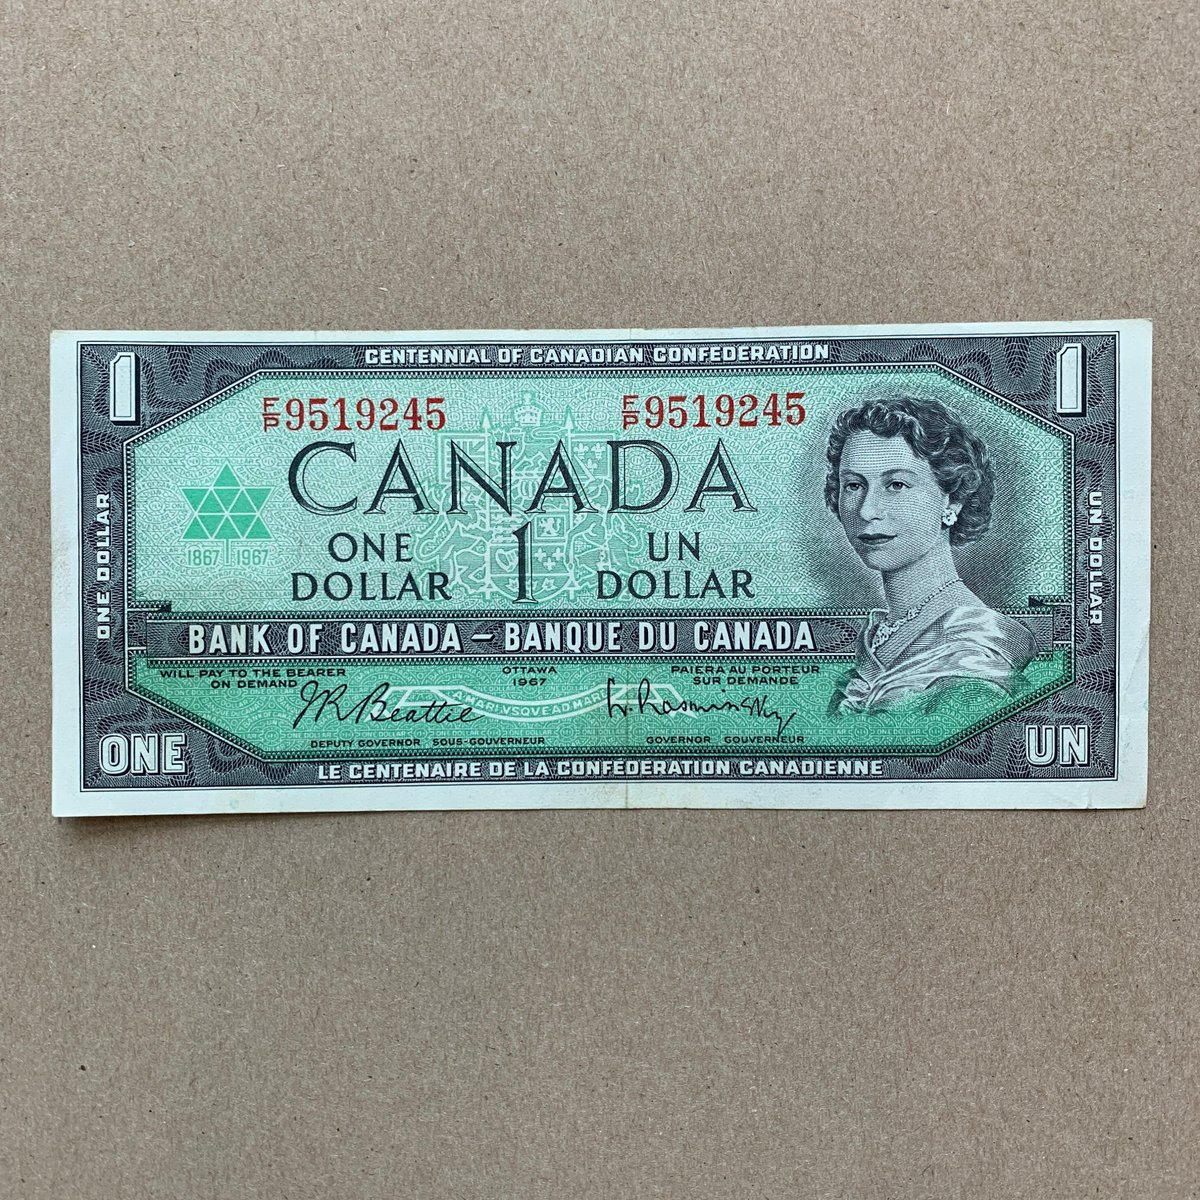 my #etsy shop: 1961-72 Canadian One Dollar Bill Banknote. Queen Elizabeth Currency, Notes, Bills, Canada Bank Note. Lightly Used.  #banknote #currency #bills #pesos #dollars #coins #collectibles #vintage #antiques